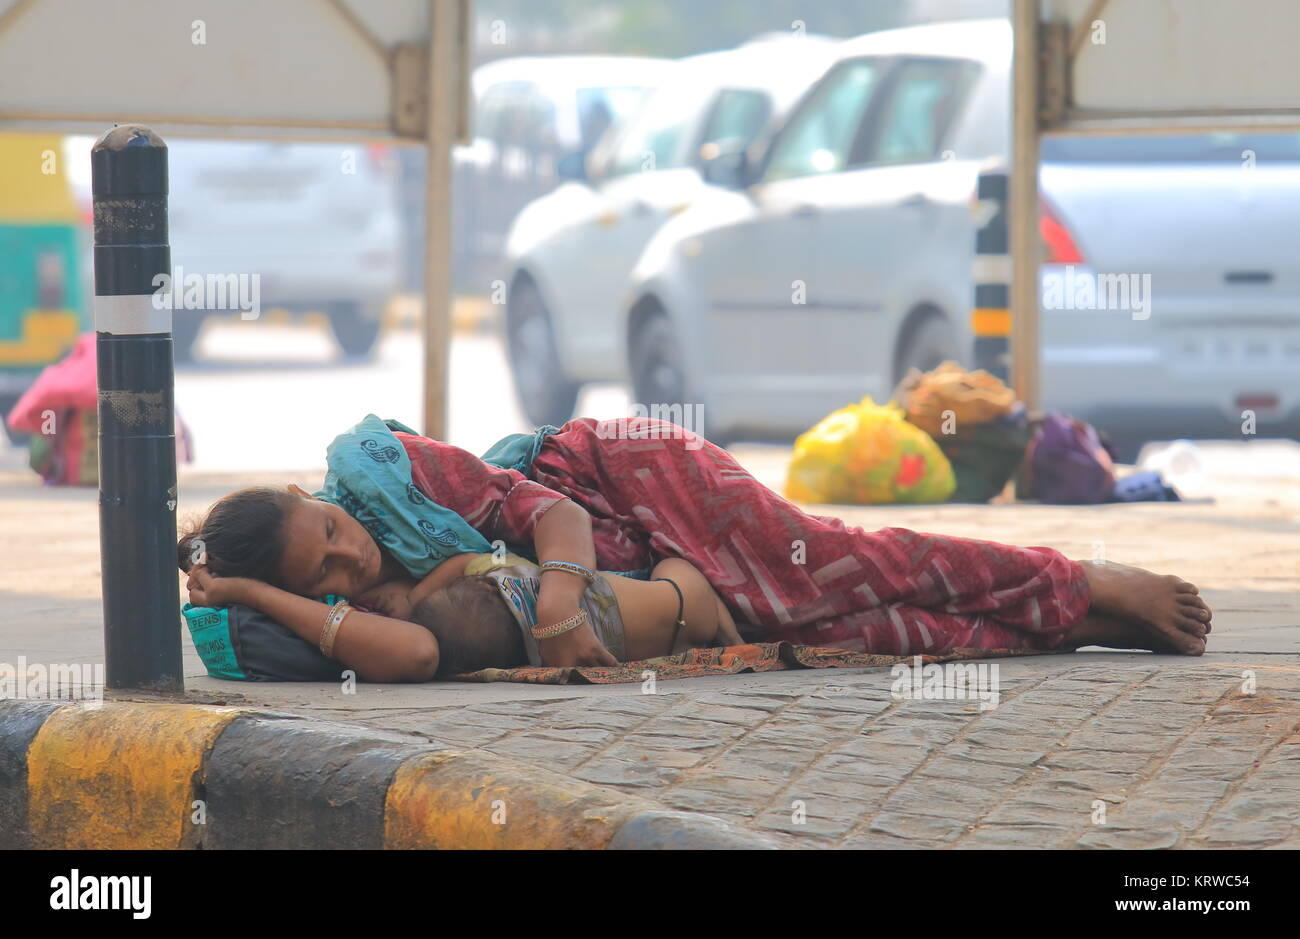 Indian woman cuddle a baby and sleep on the street in downtown New Delhi India - Stock Image